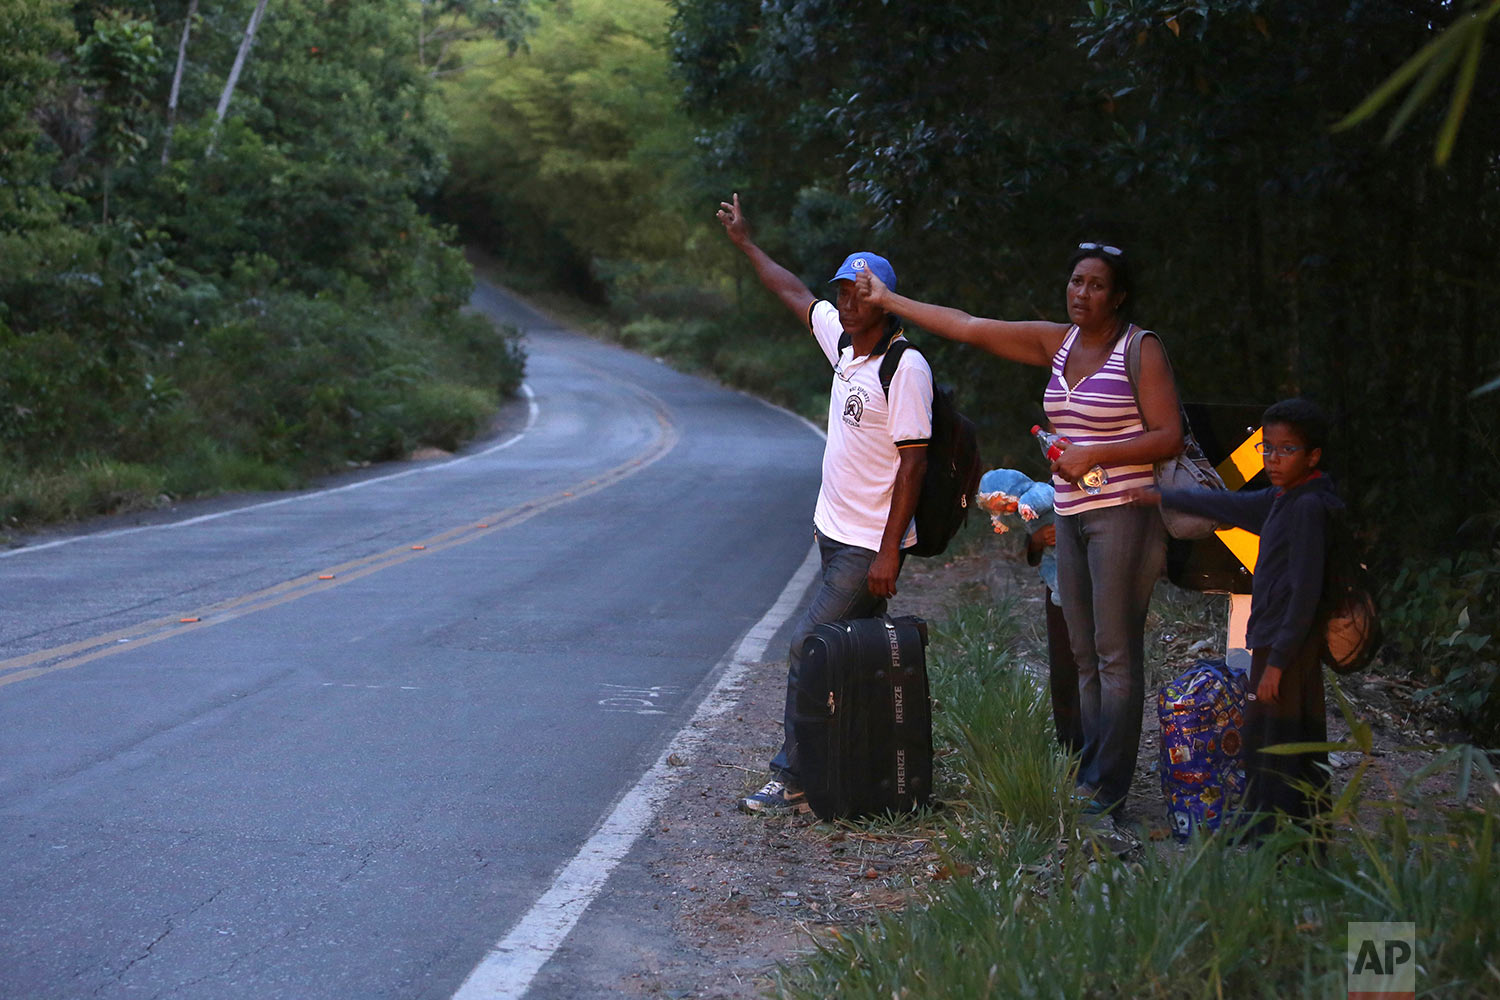 Venezuelan couple Jose Guillen and July Bascelta hitch-hike with their 9-year-old twins Angel David and Ashley Angelina along Highway BR 147 after crossing the border into Brazil near Pacaraima, Roraima state, Brazil,March 9, 2018.(AP Photo/Eraldo Peres)